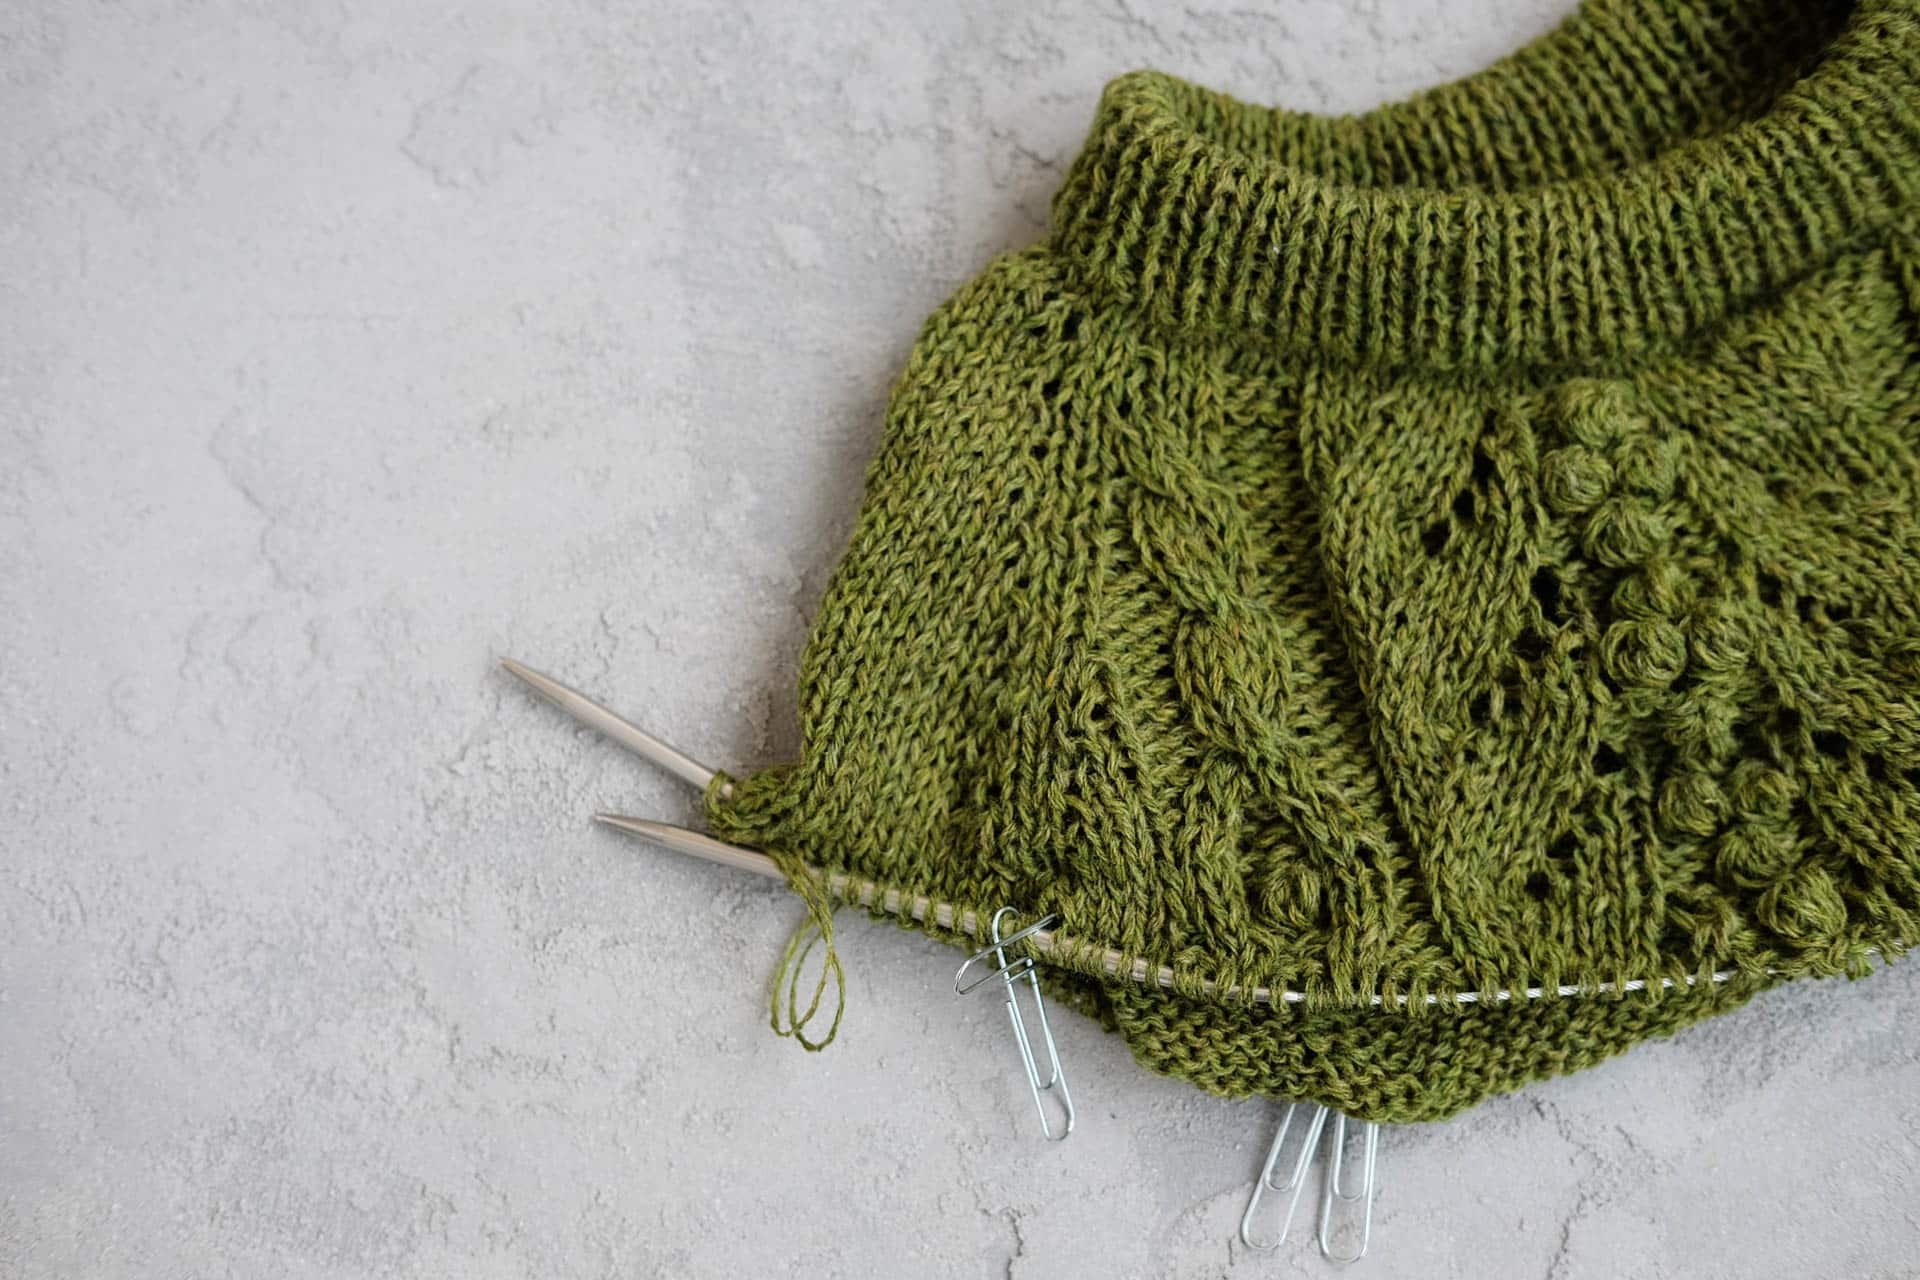 Green wool knitted jumper. Work in progress.